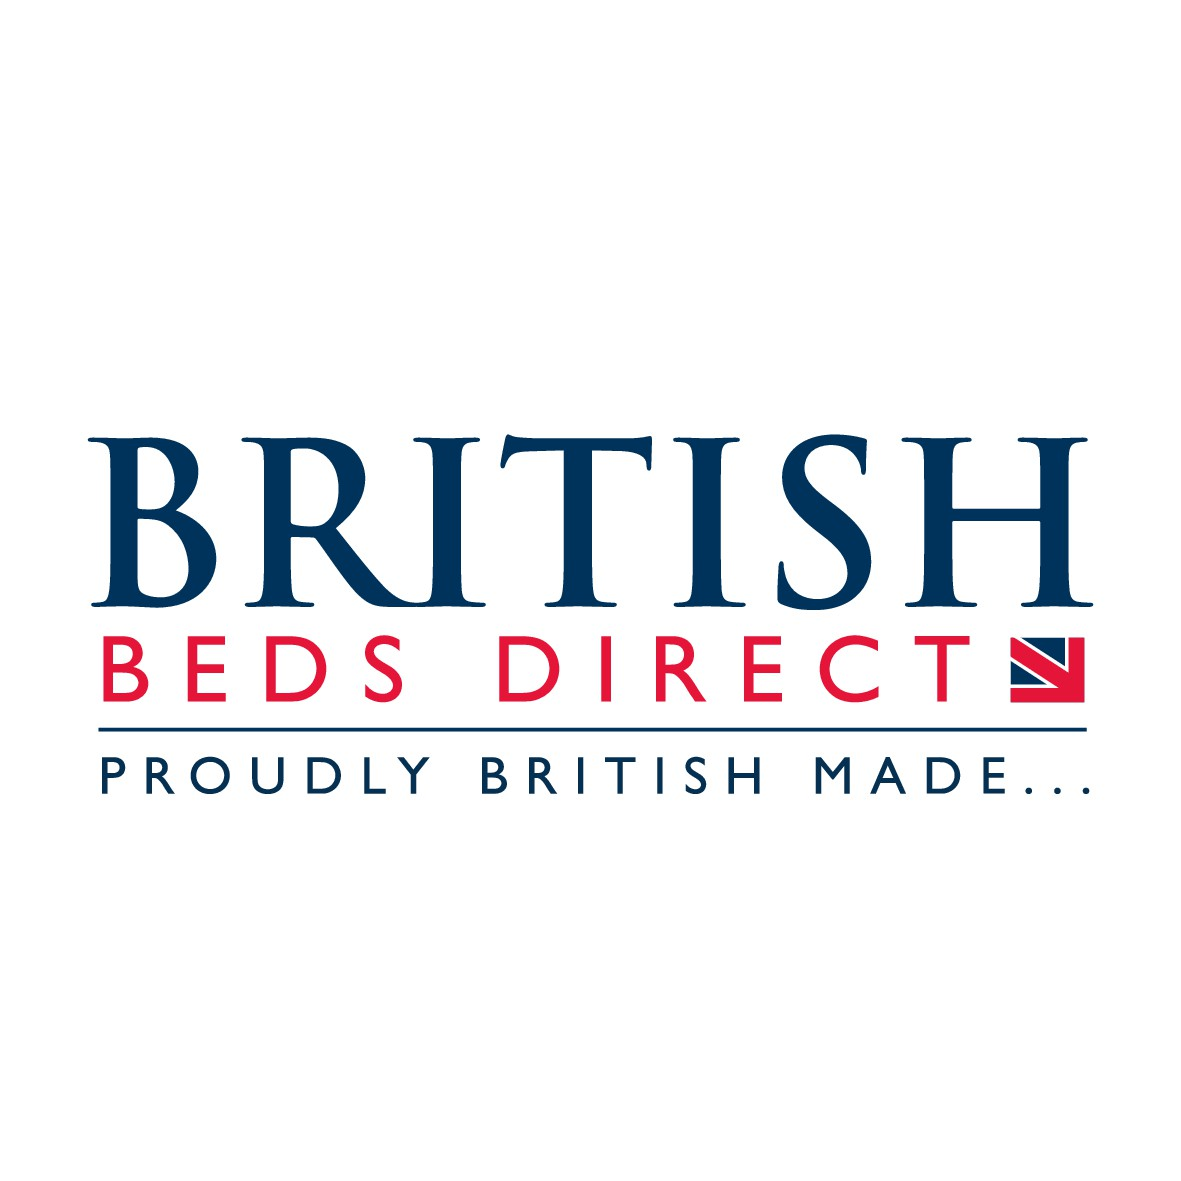 We need a new logo / branding for new B2C website, promoting British made Beds.